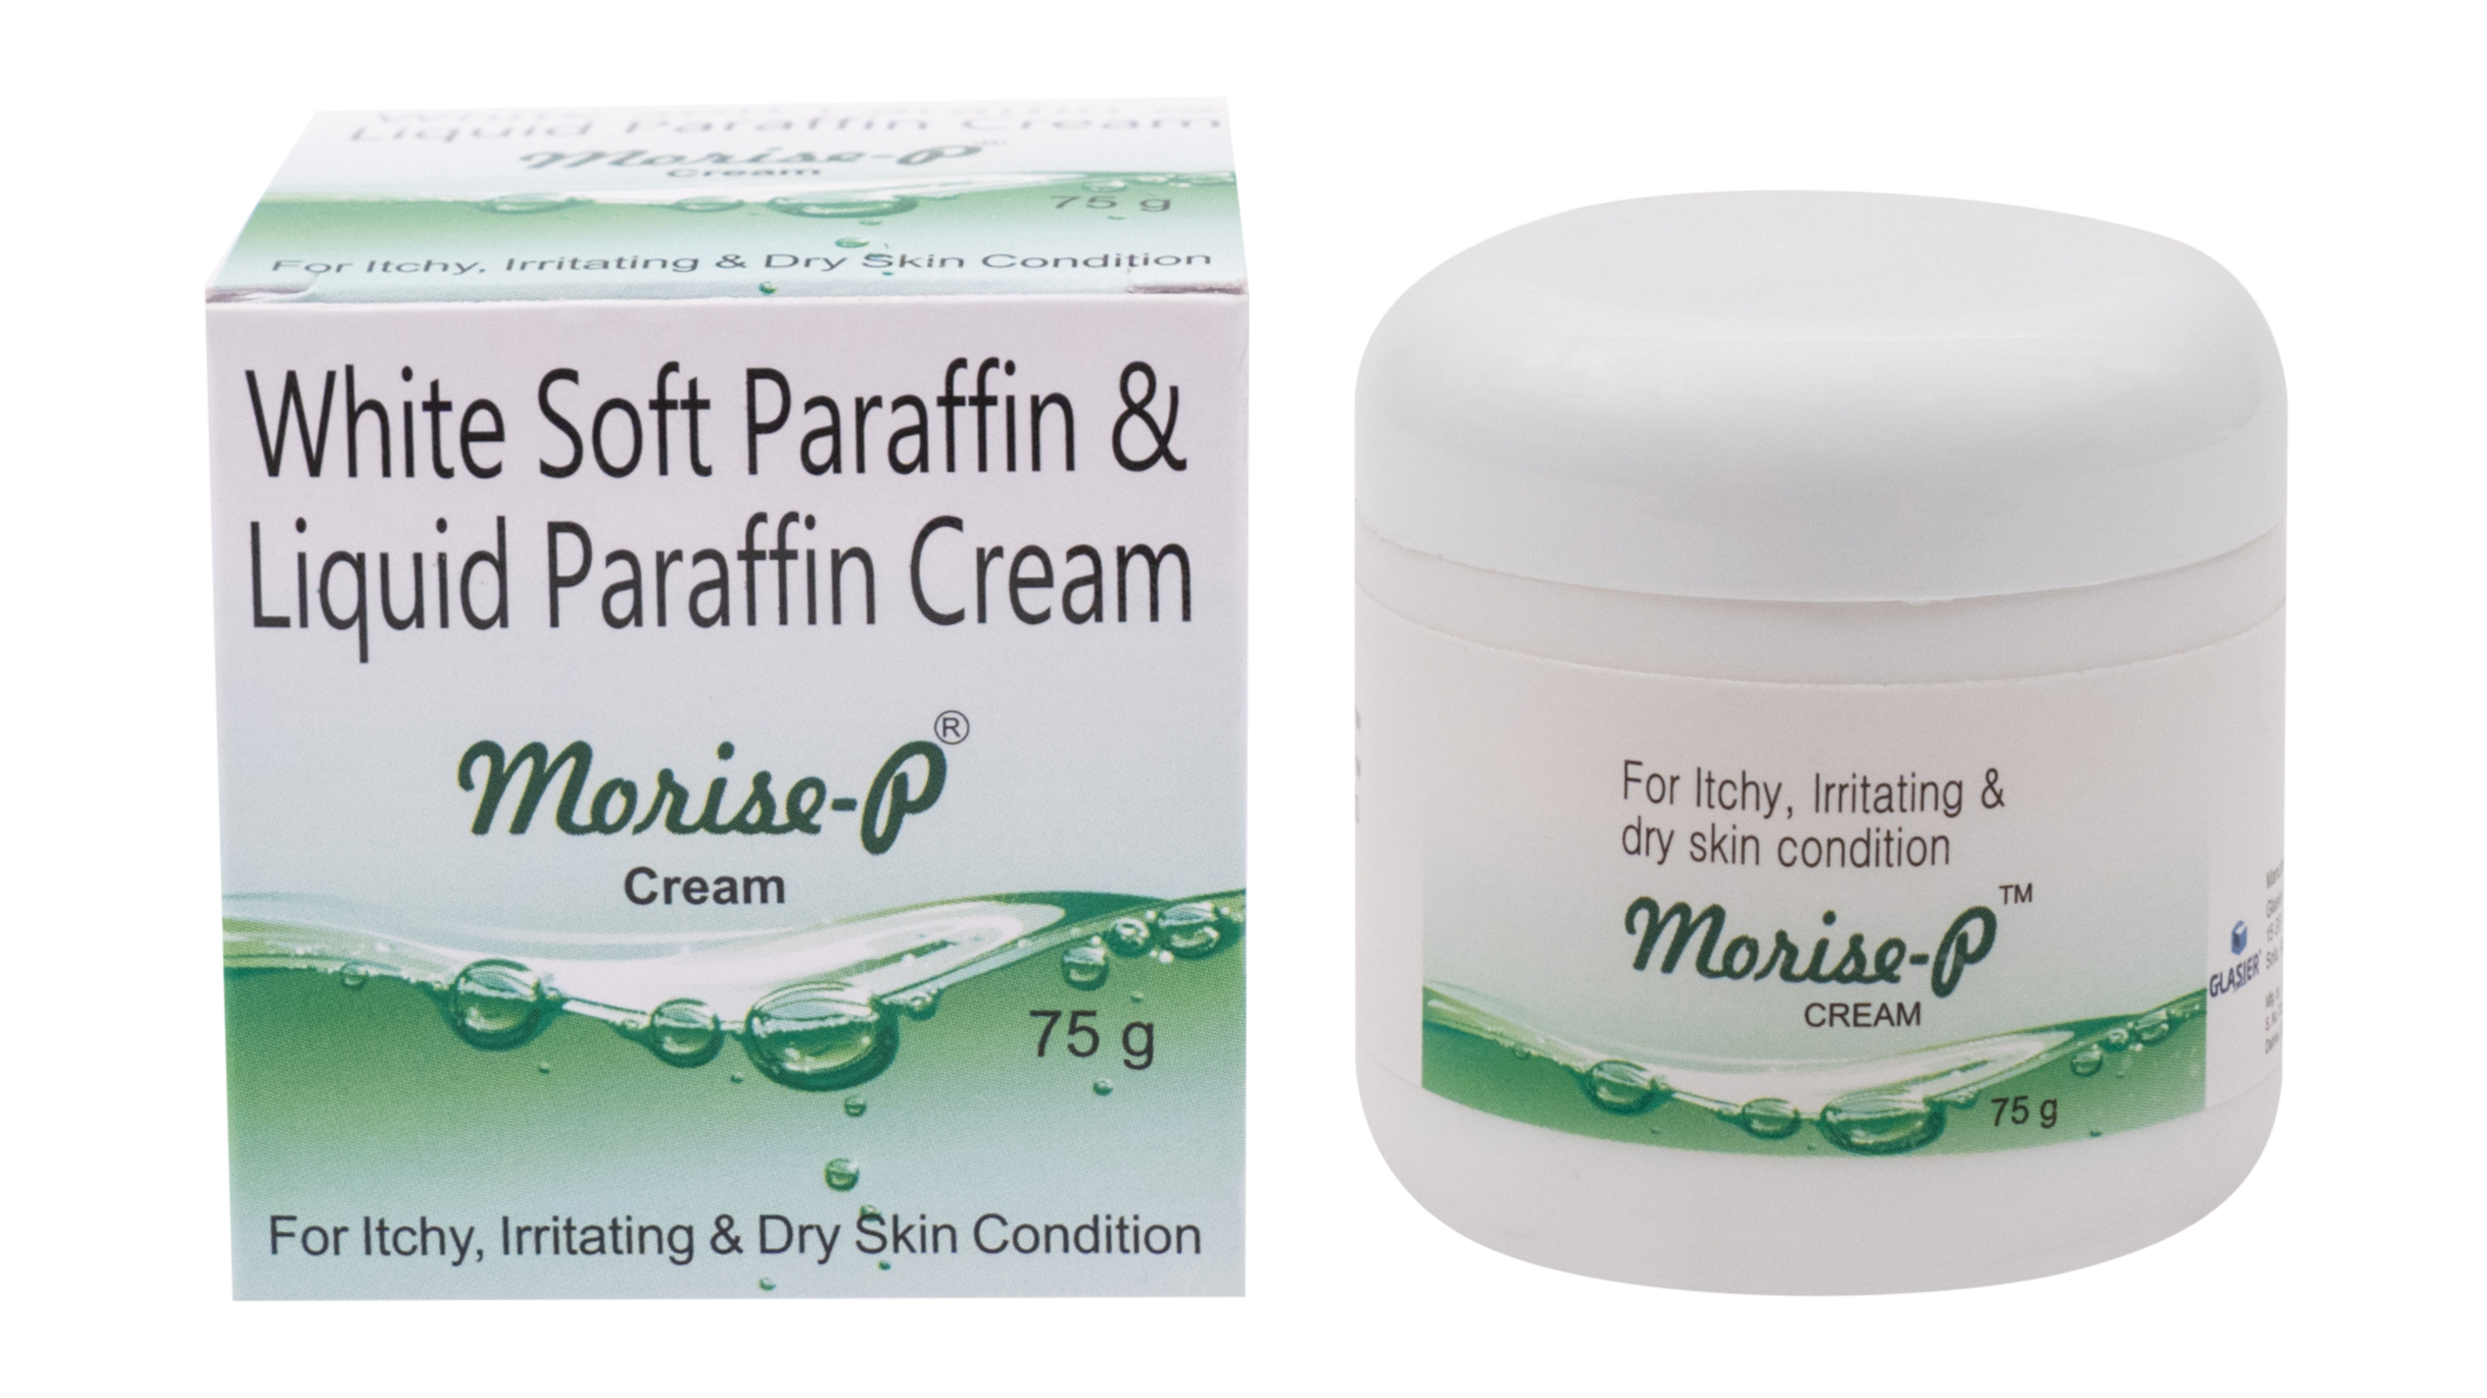 White soft Paraffin Cream